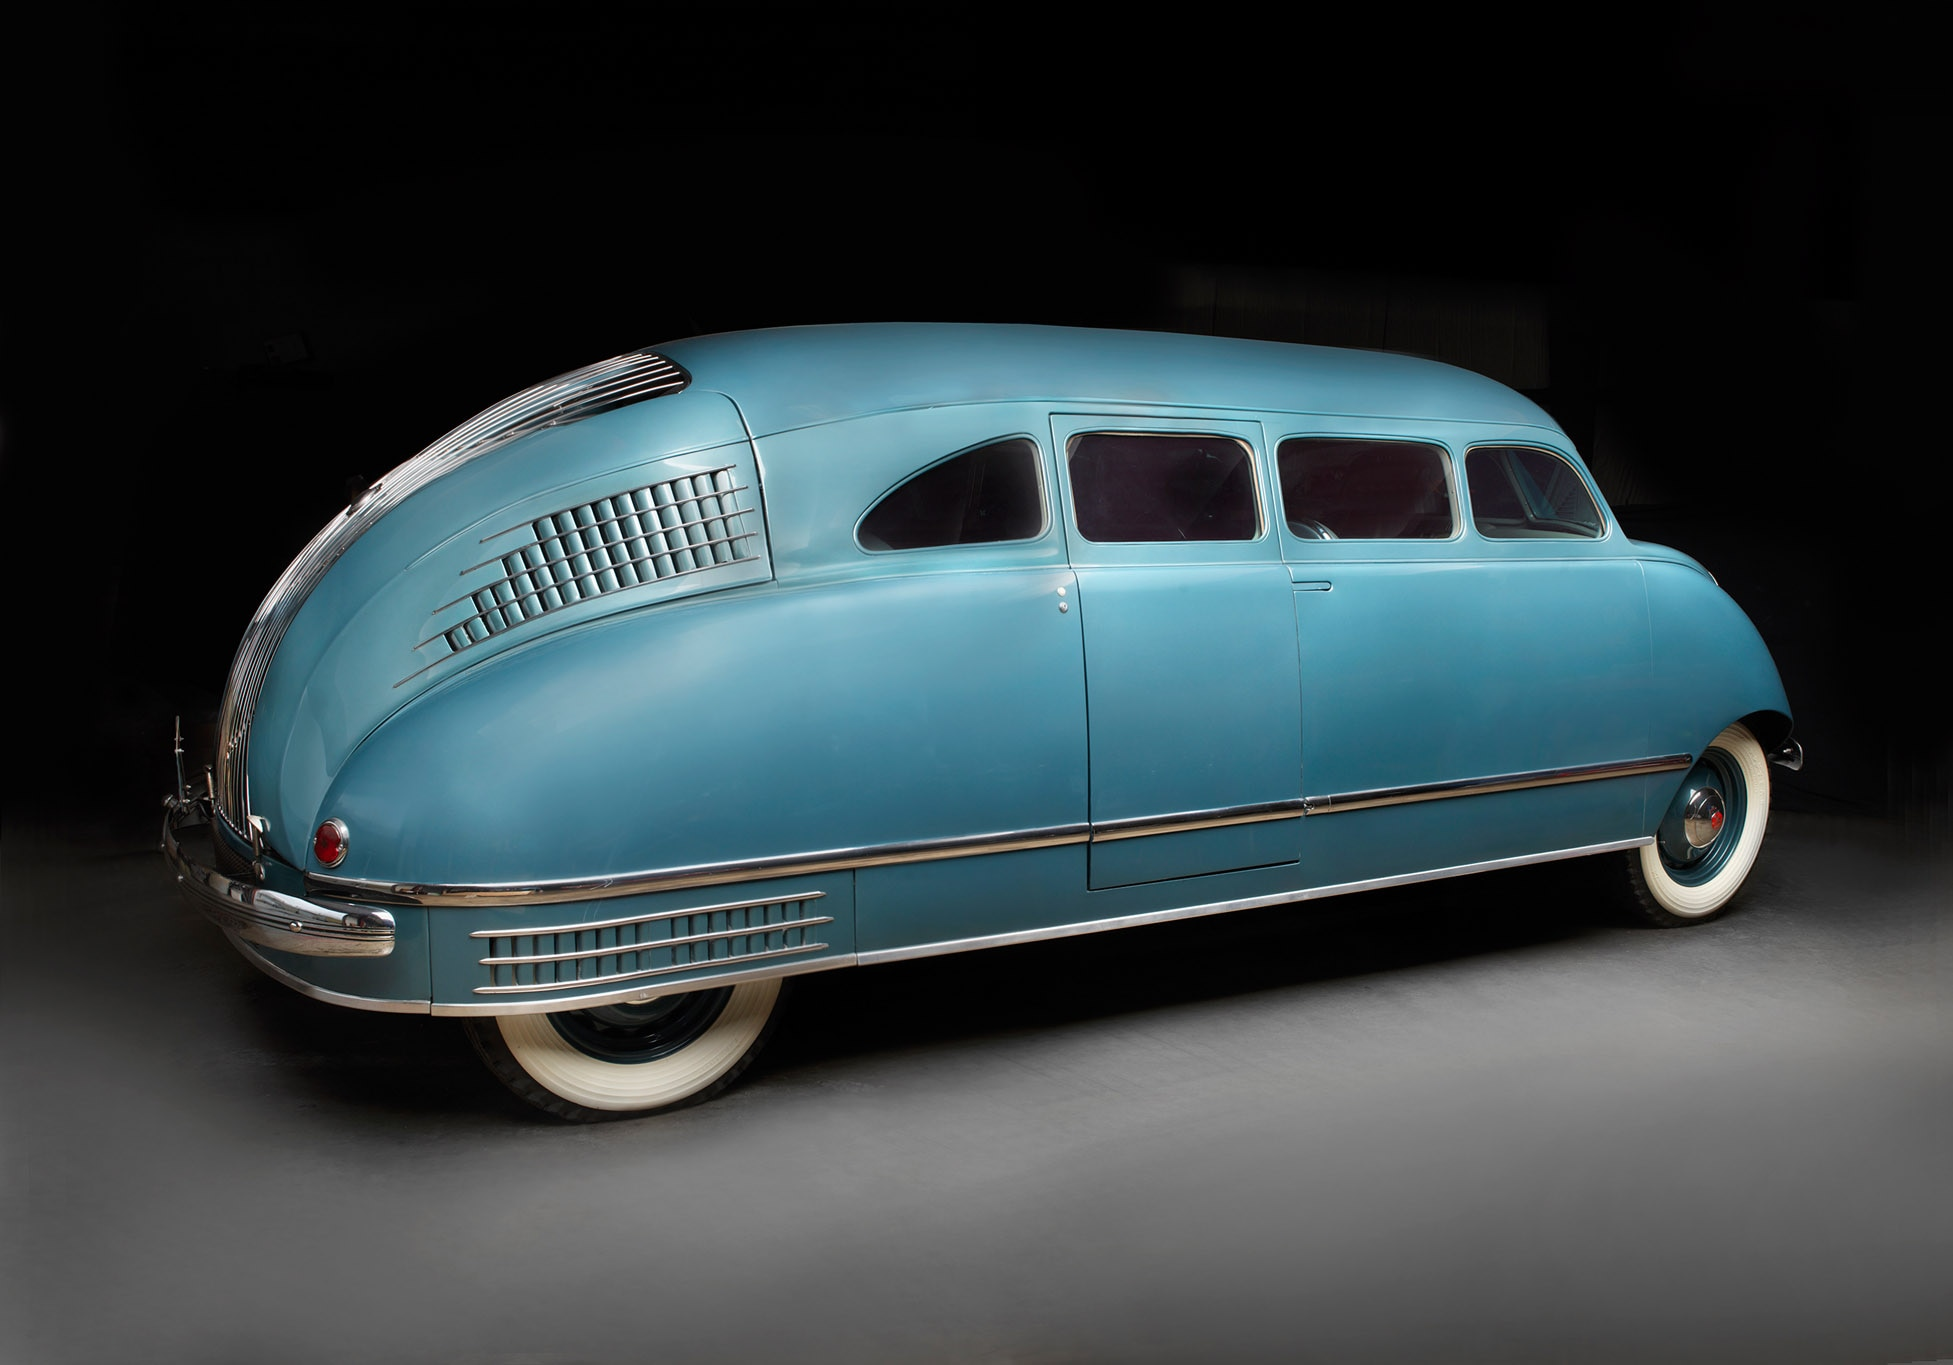 Mercedes Benz Of Portland >> The Portland Art Museum's 'Shape of Speed' Exhibition Opens June 16 | Automobile Magazine